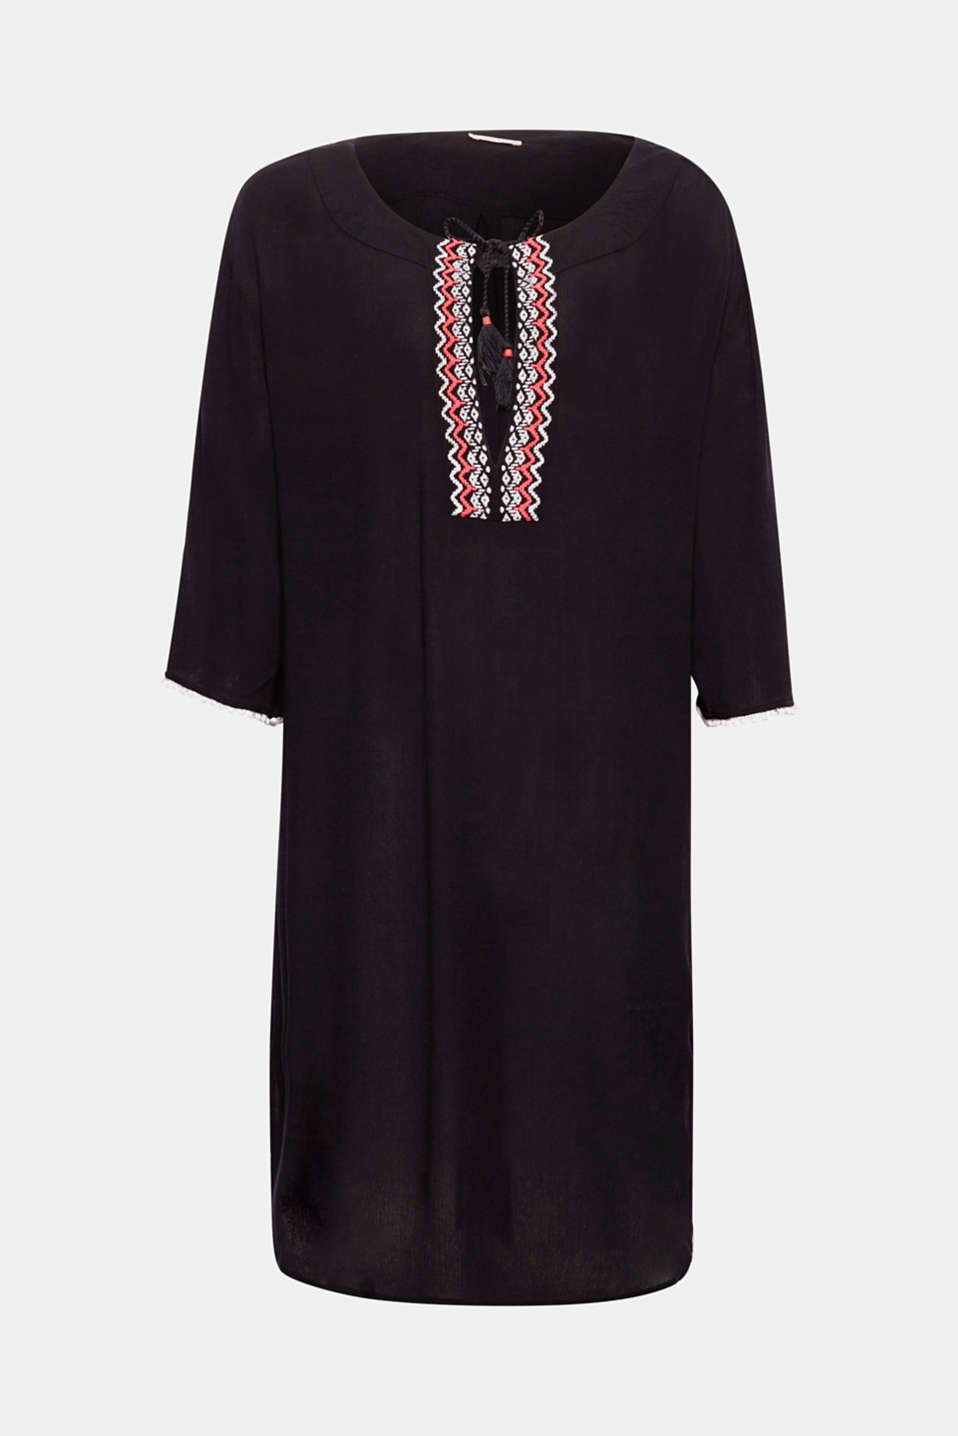 BURNS collection - this summery crinkle tunic is lightweight and casual with colourful embroidery on the neckline!